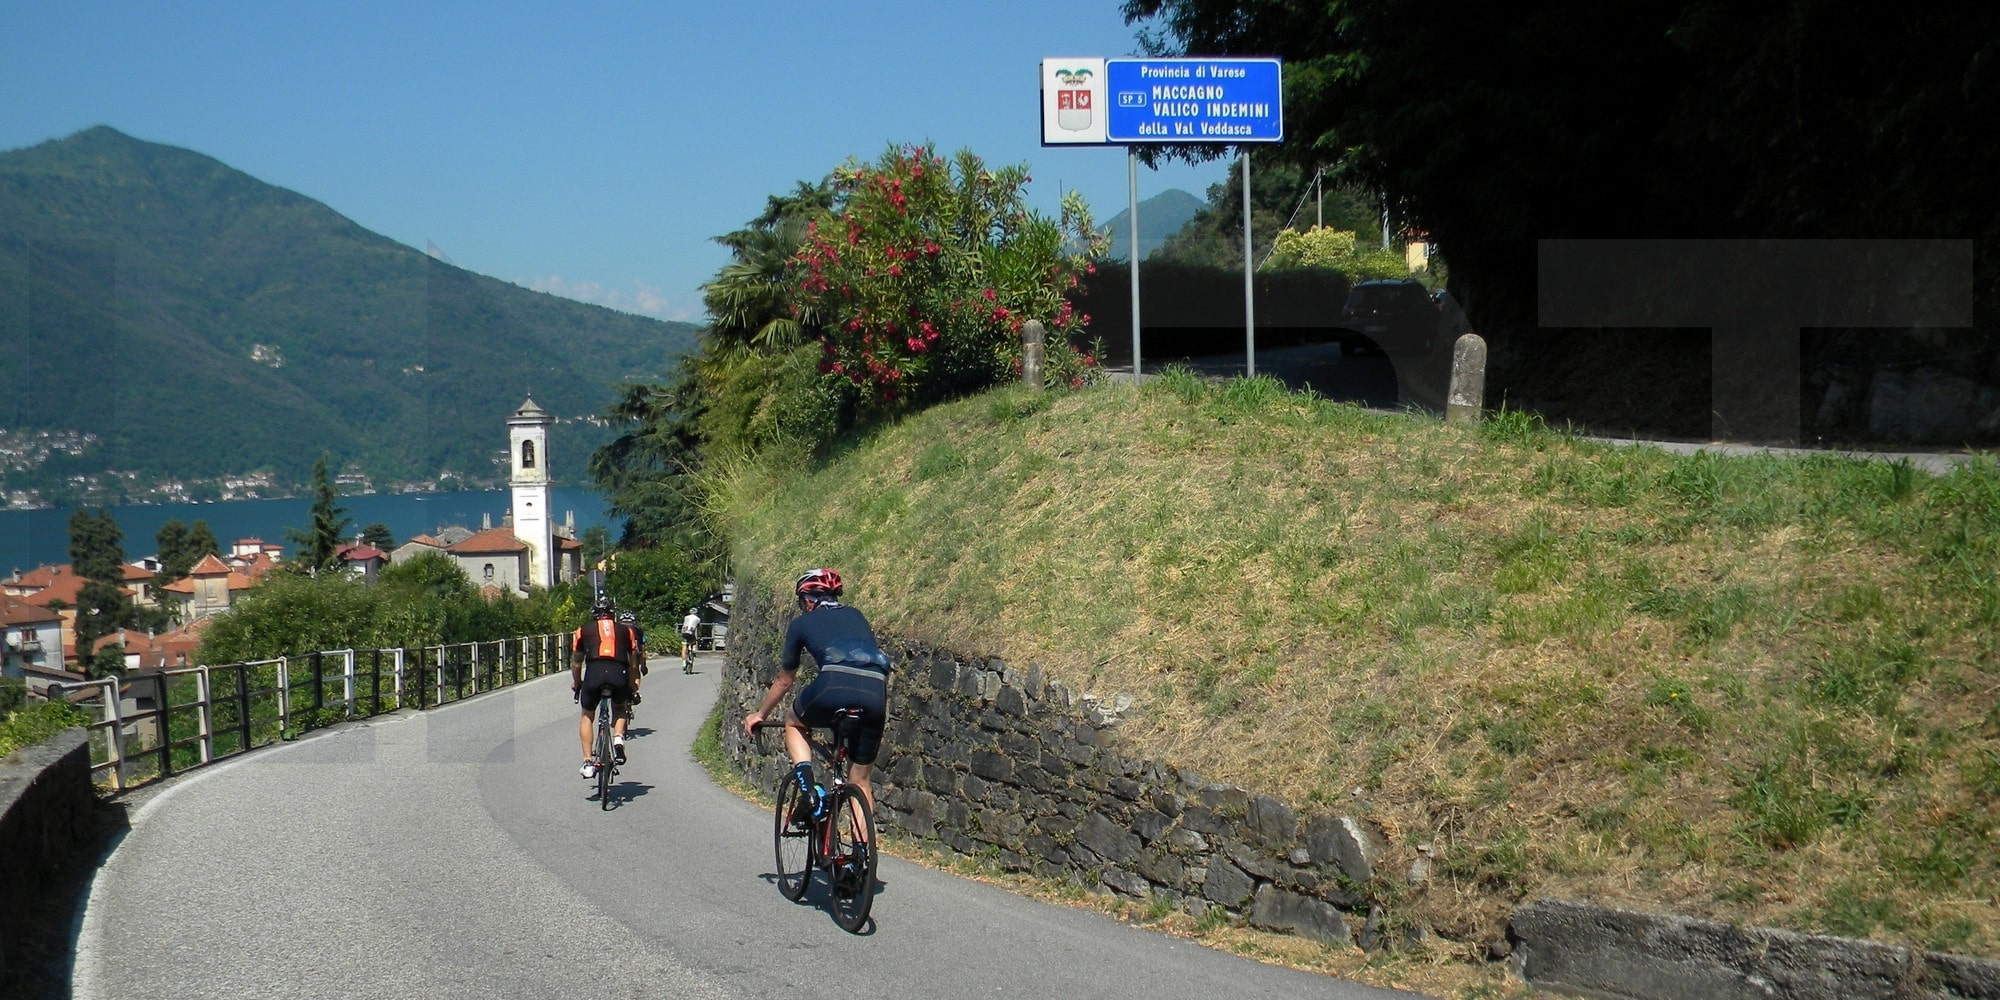 Lake Maggiore cycling experience